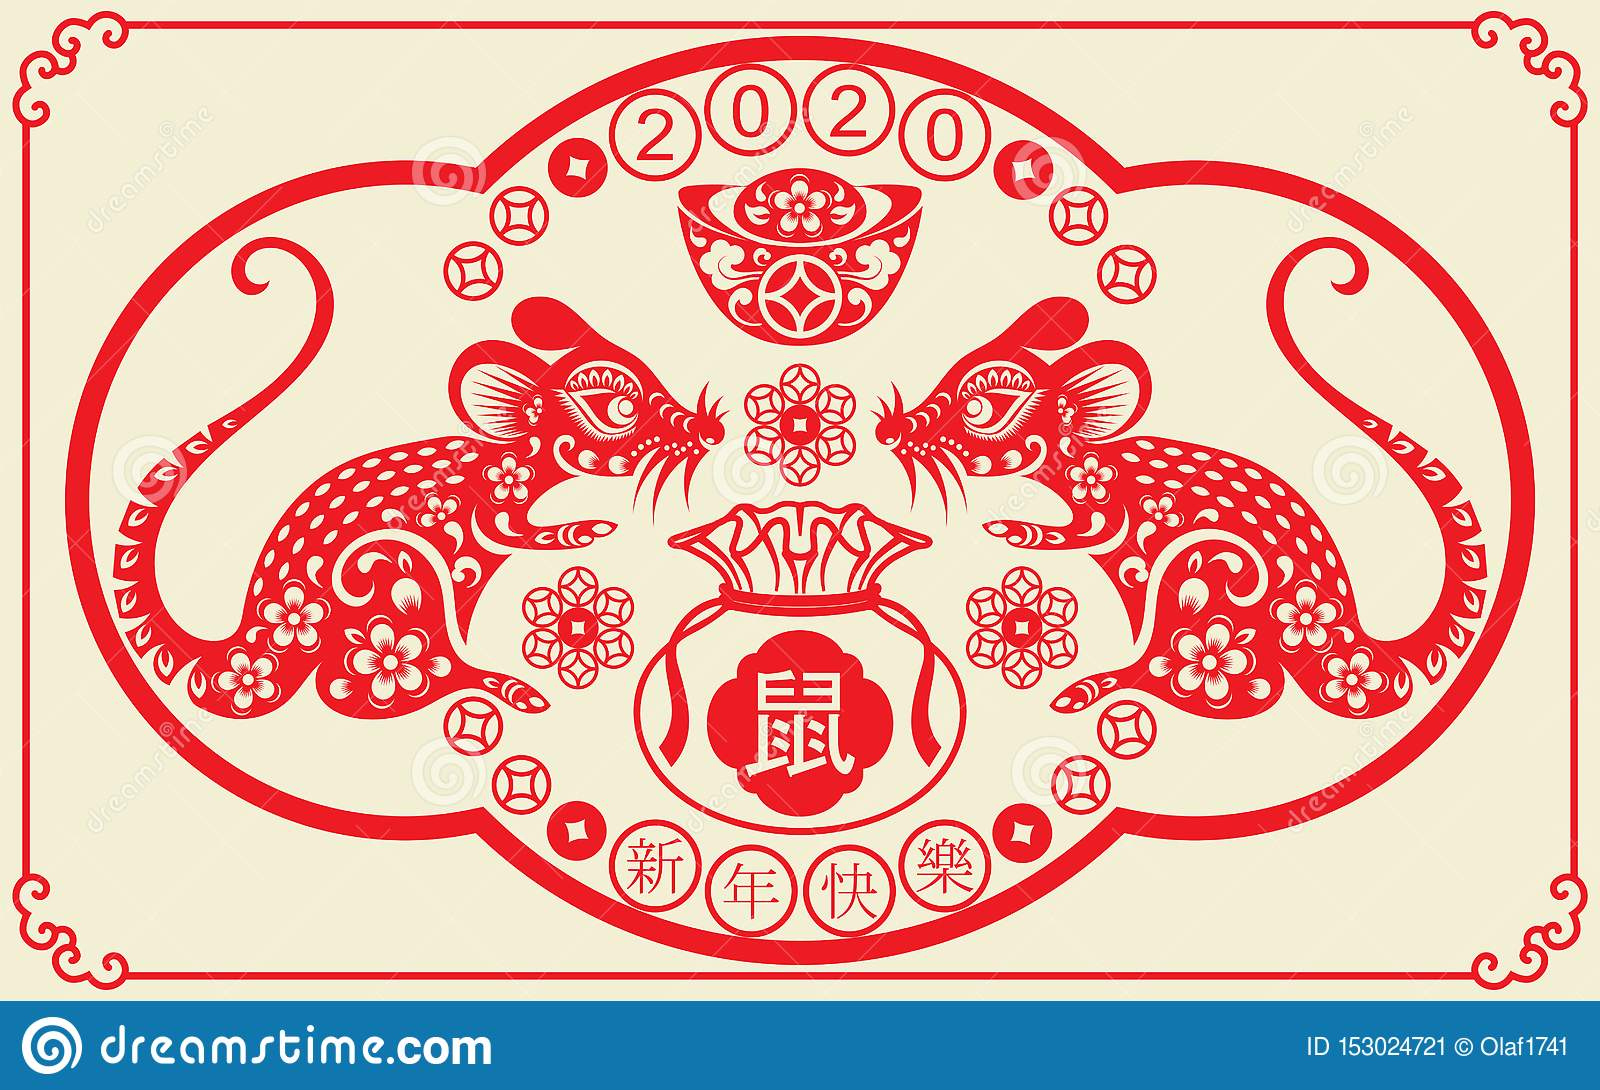 Happy Chinese New Year 2020 Year Of The Rat. Stock Vector ...